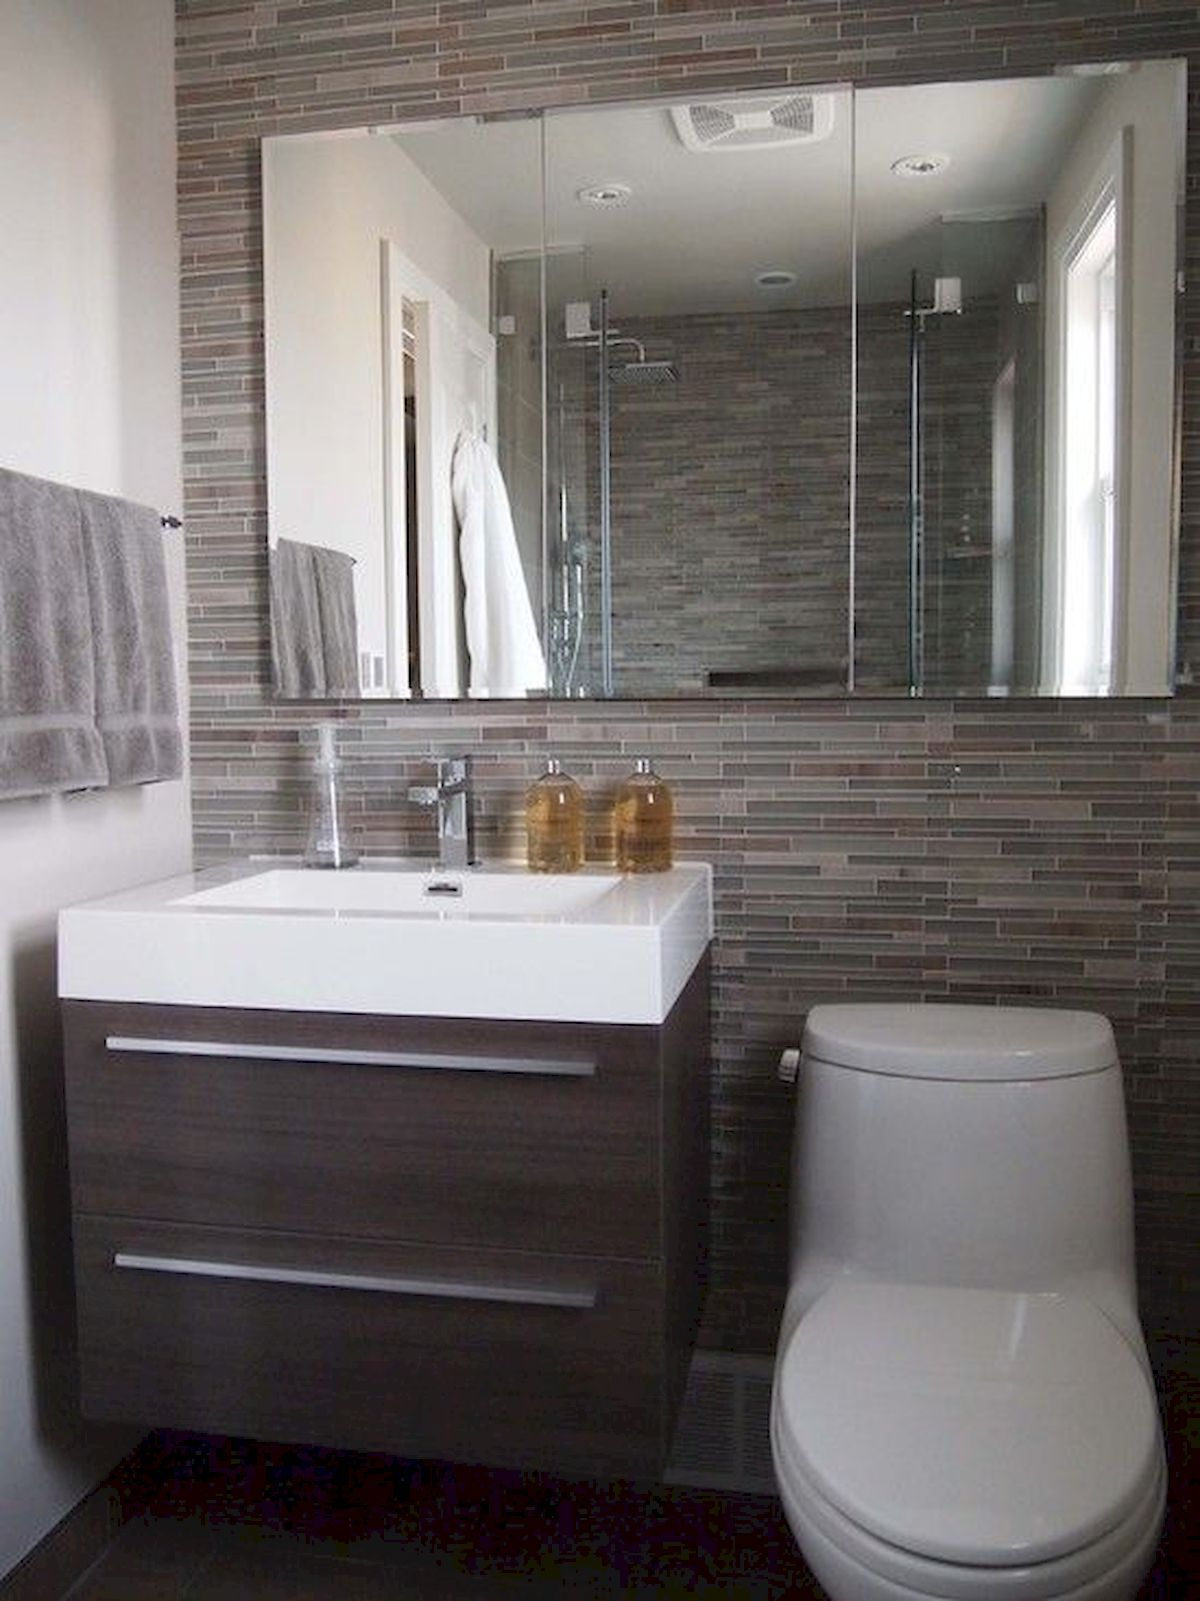 70 Modern Bathroom Cabinets Ideas Decorations And Remodel (22)